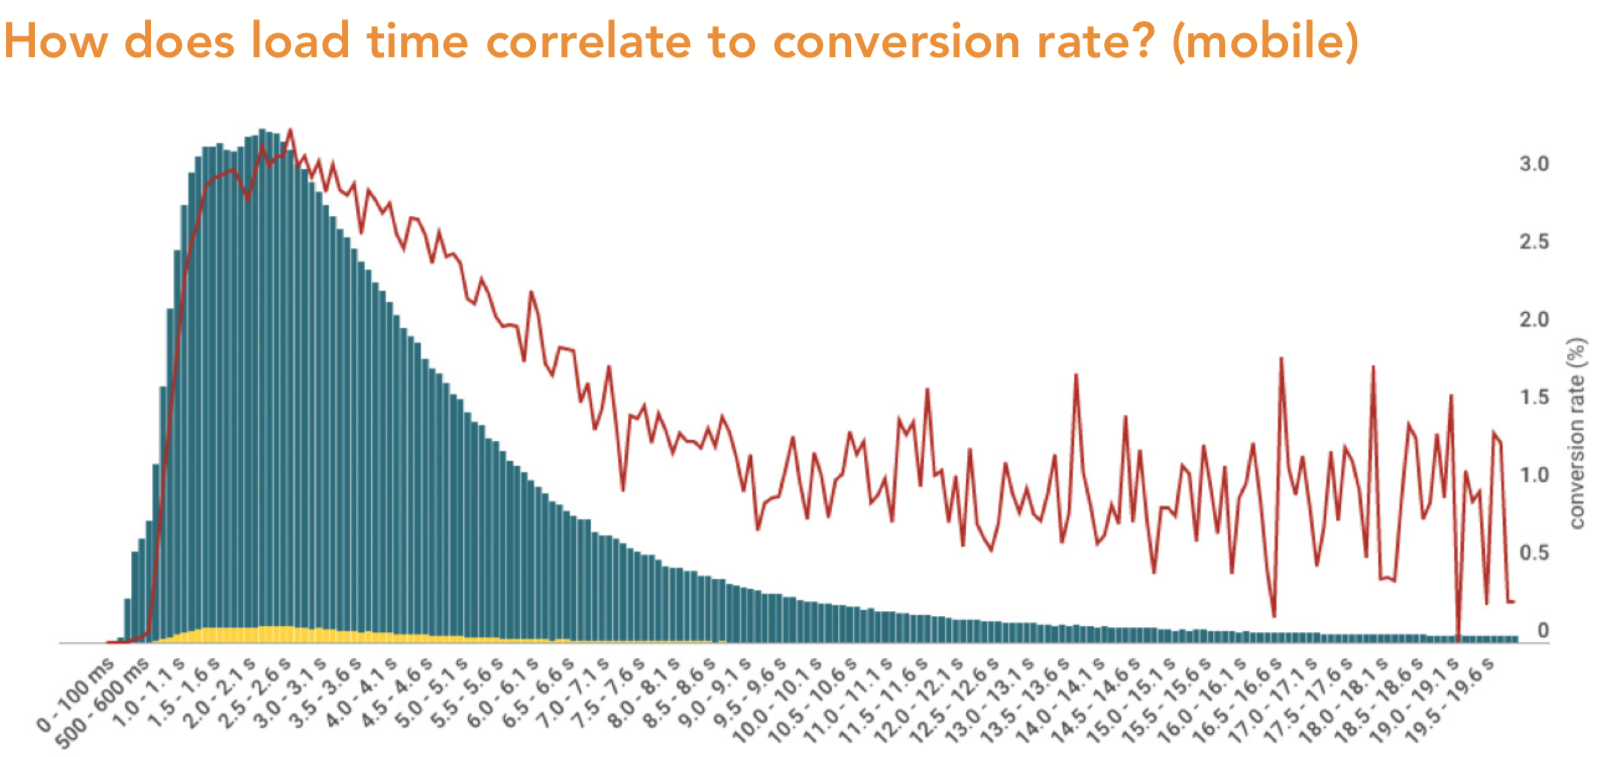 How does load time correlate to conversion rate (mobile)?